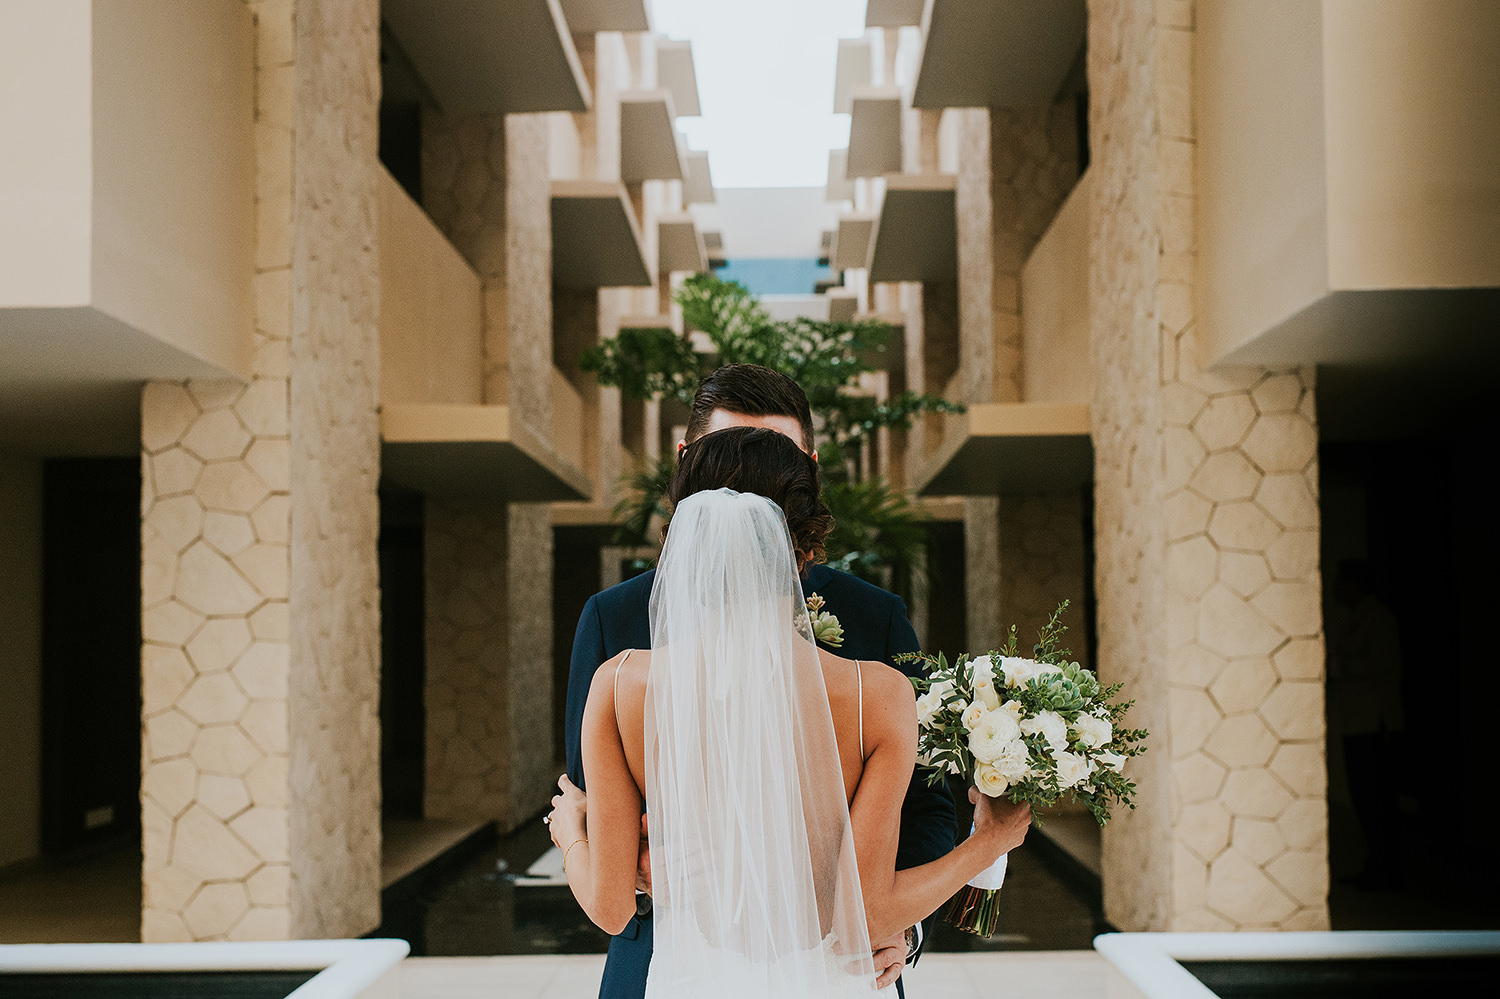 CherylReed_Wedding_Kape_Photography_WeddingPhotography_Mexico_Boda_Fotografia_Royalton_Hideway_Cancun_RivieraMaya_PlayadelCarmen_Beach_126FB_BLOG.jpg